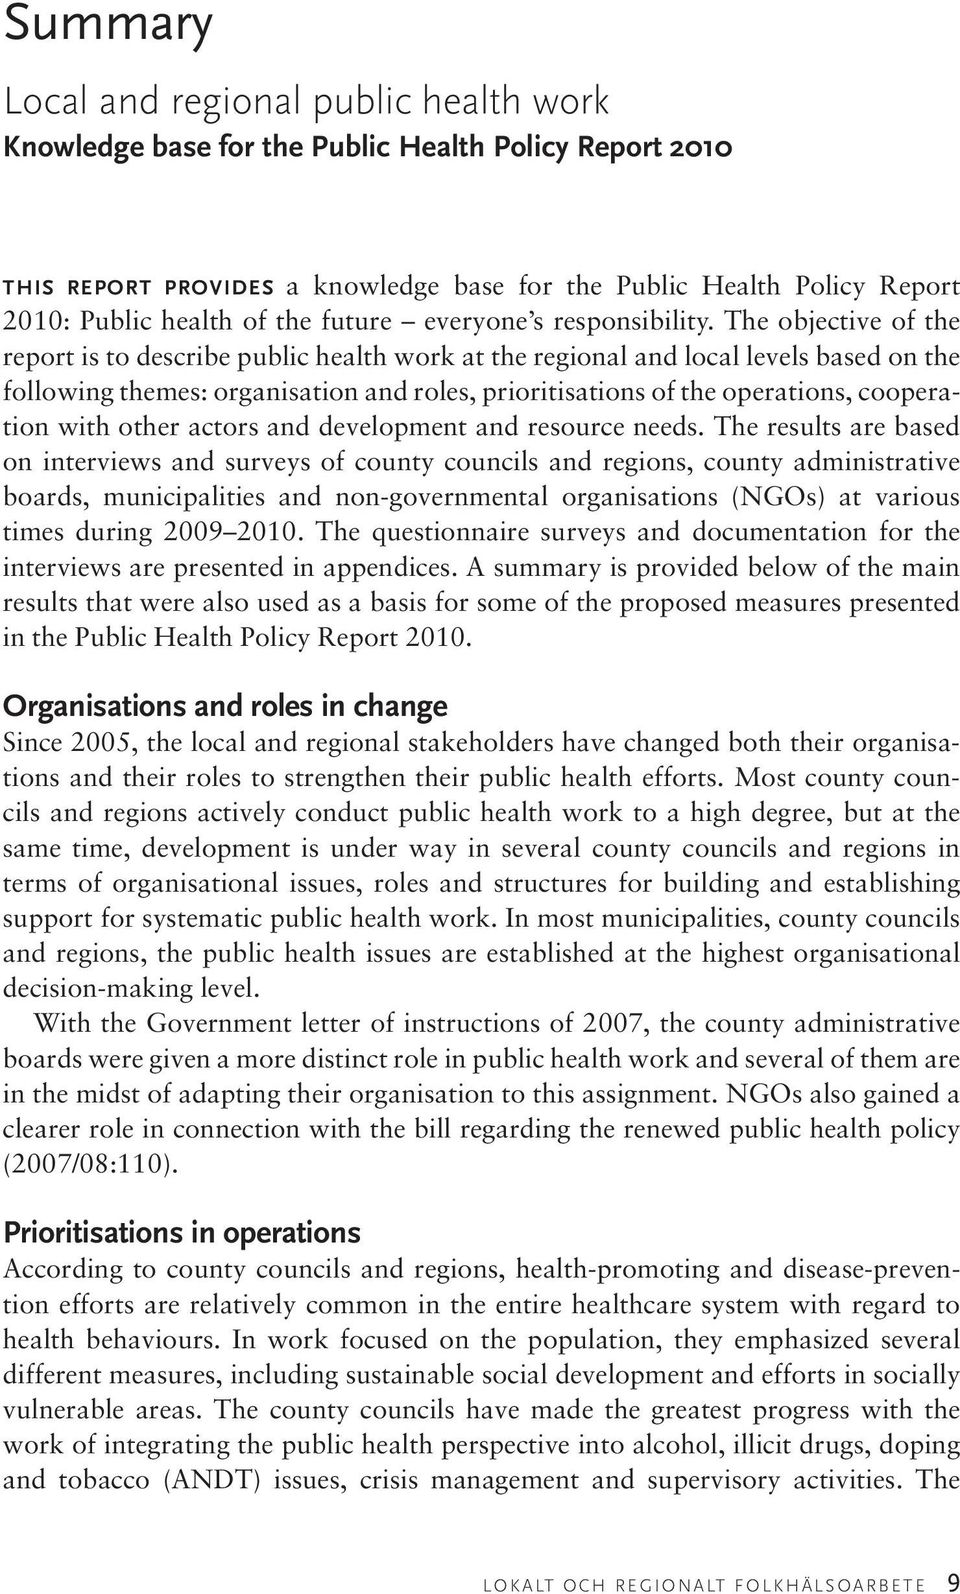 The objective of the report is to describe public health work at the regional and local levels based on the following themes: organisation and roles, prioritisations of the operations, cooperation